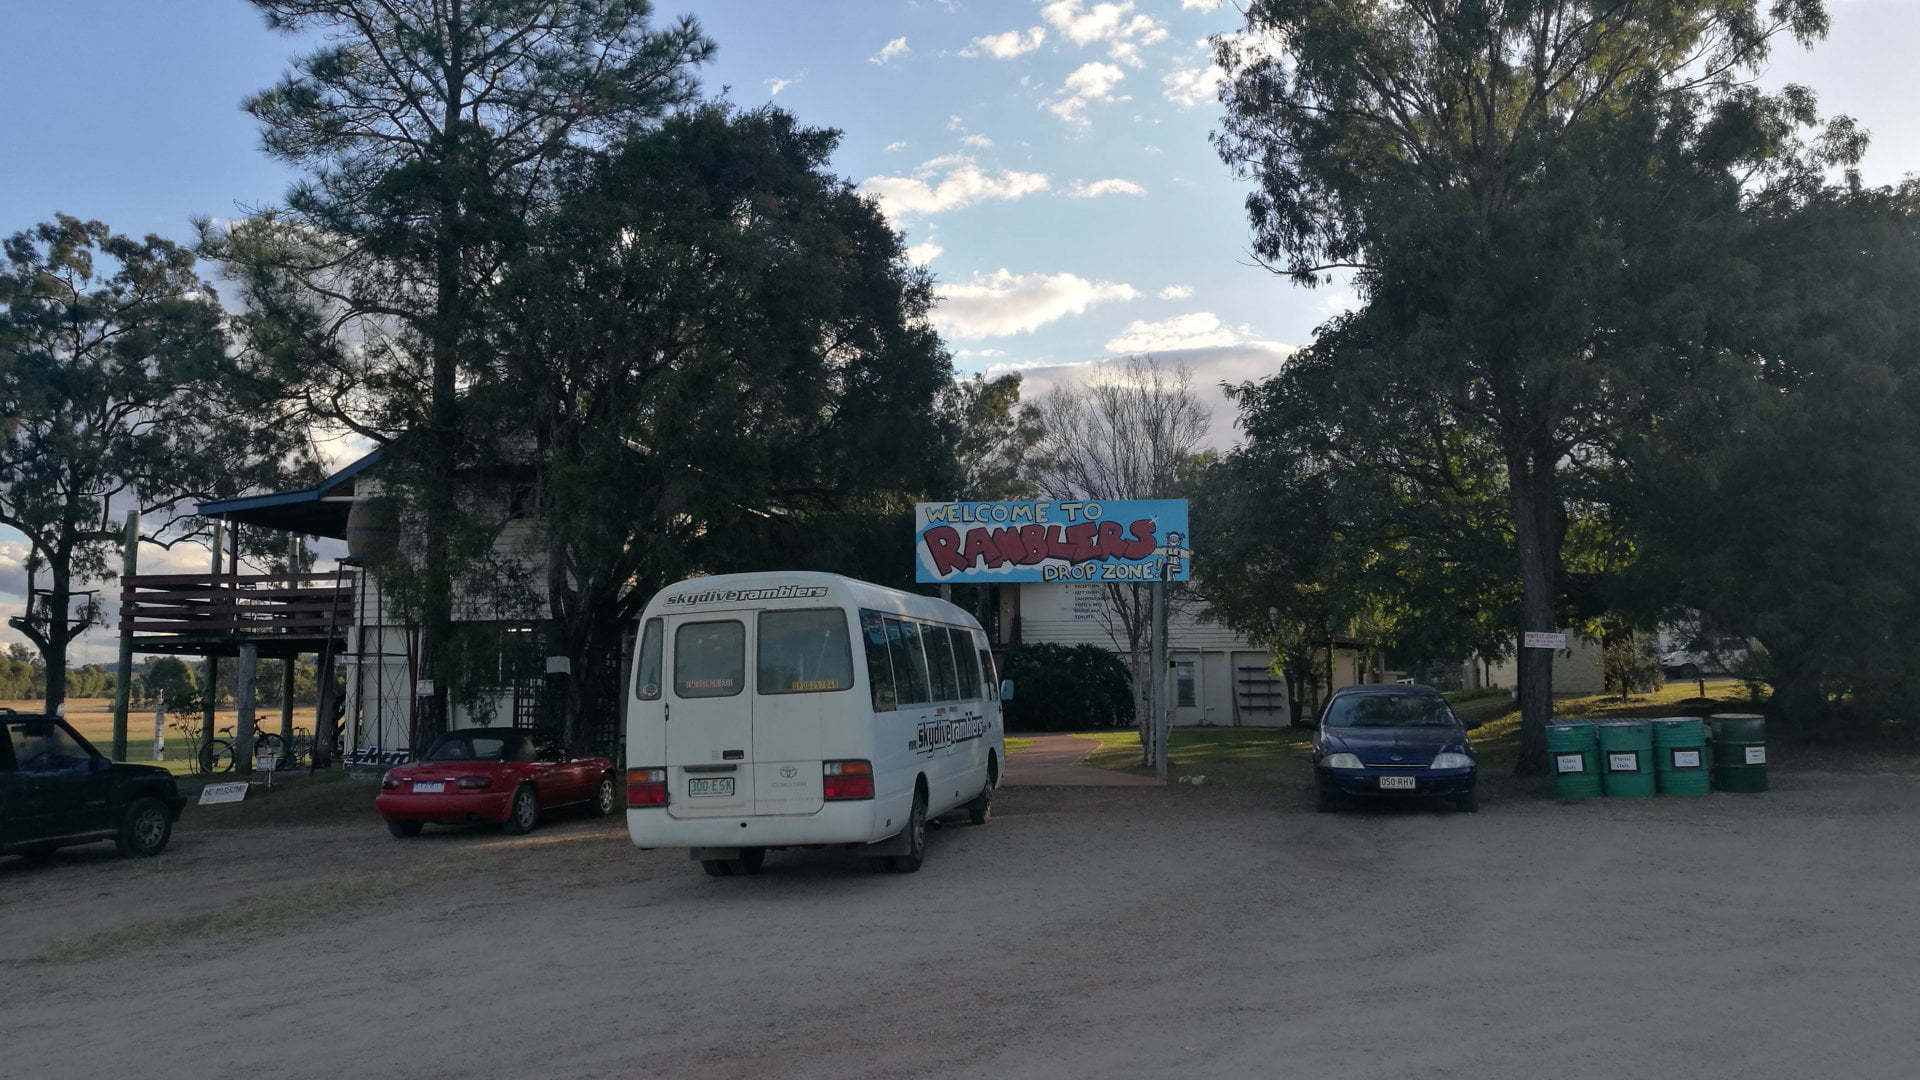 Parking and entrance to Ramblers, a skydiving organisation, offering skydiving, parachuting and tandem skydiving, and onsite accommodation. Ramblers Drop Zone is at Toogoolawah north of Esk